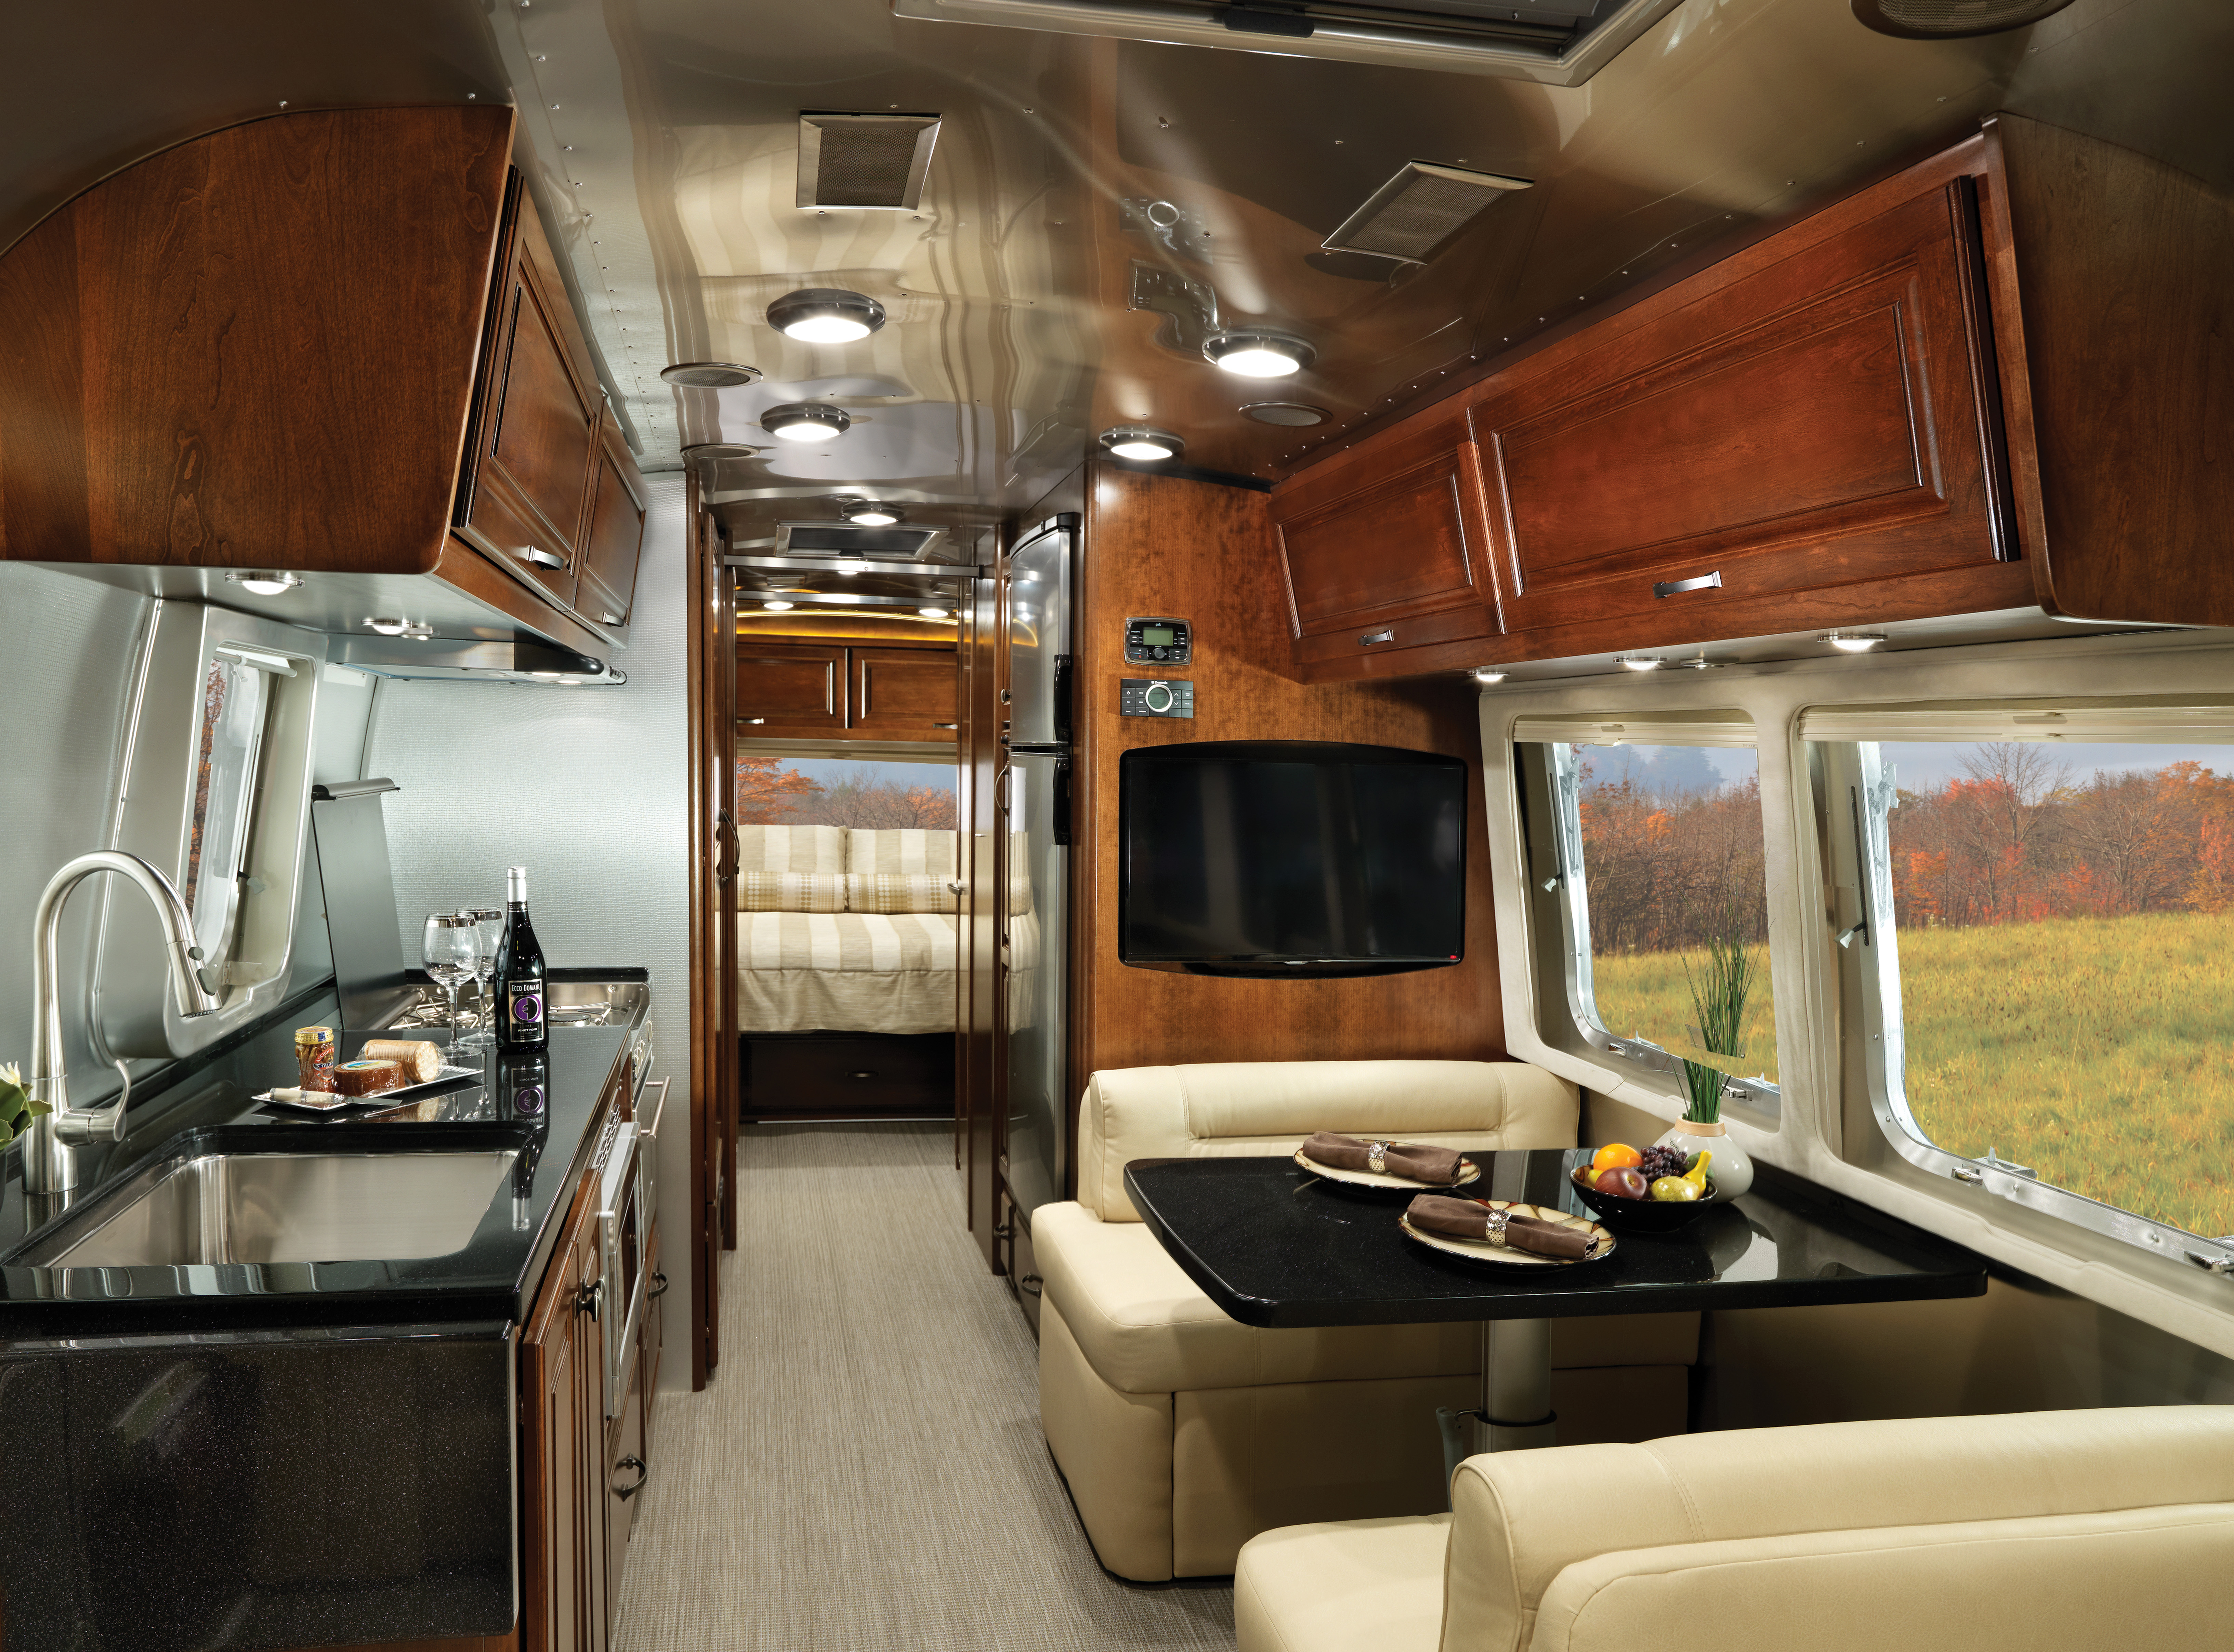 The All New 2015 Airstream Classic Travel Trailer